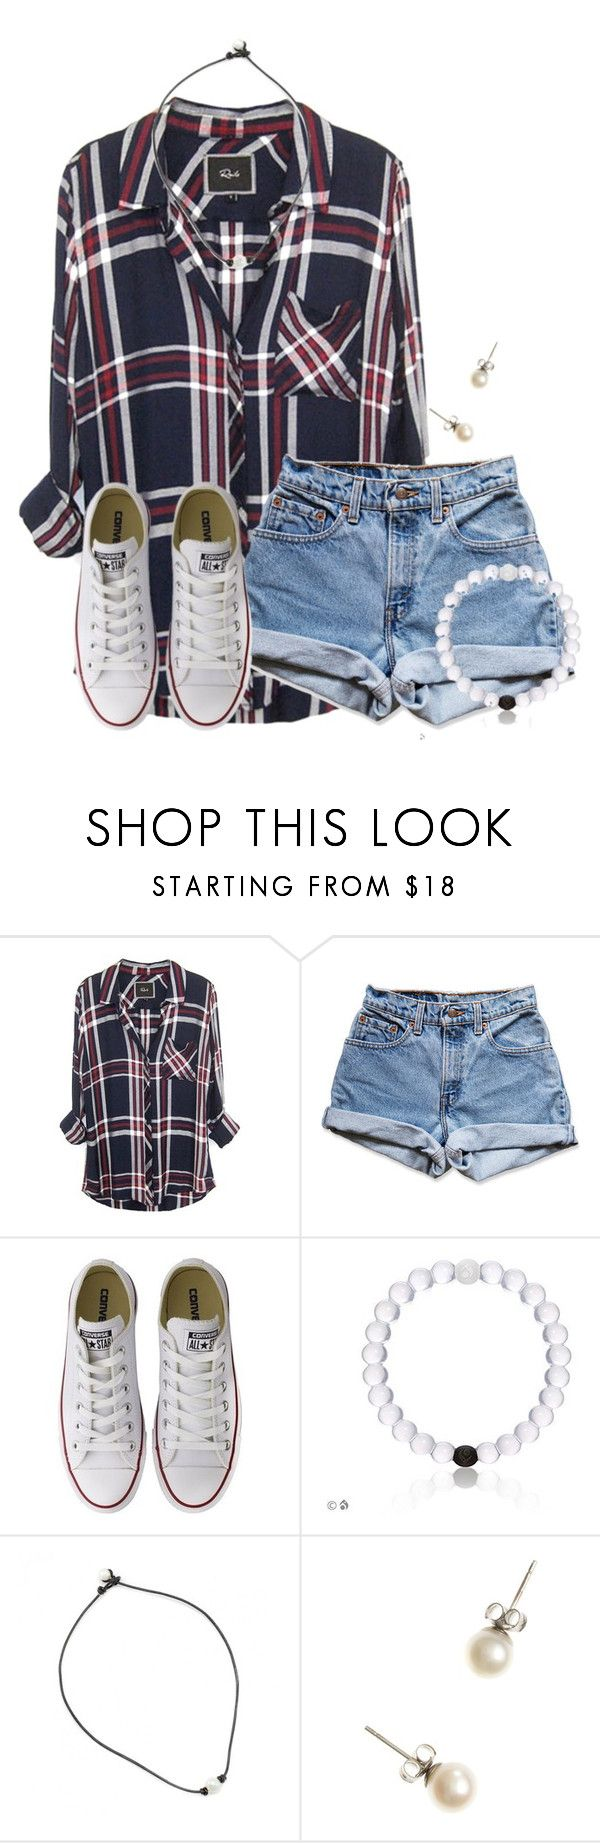 """""""Flannels are just yasss!"""" by flroasburn ❤ liked on Polyvore featuring Levi's, Converse and J.Crew"""